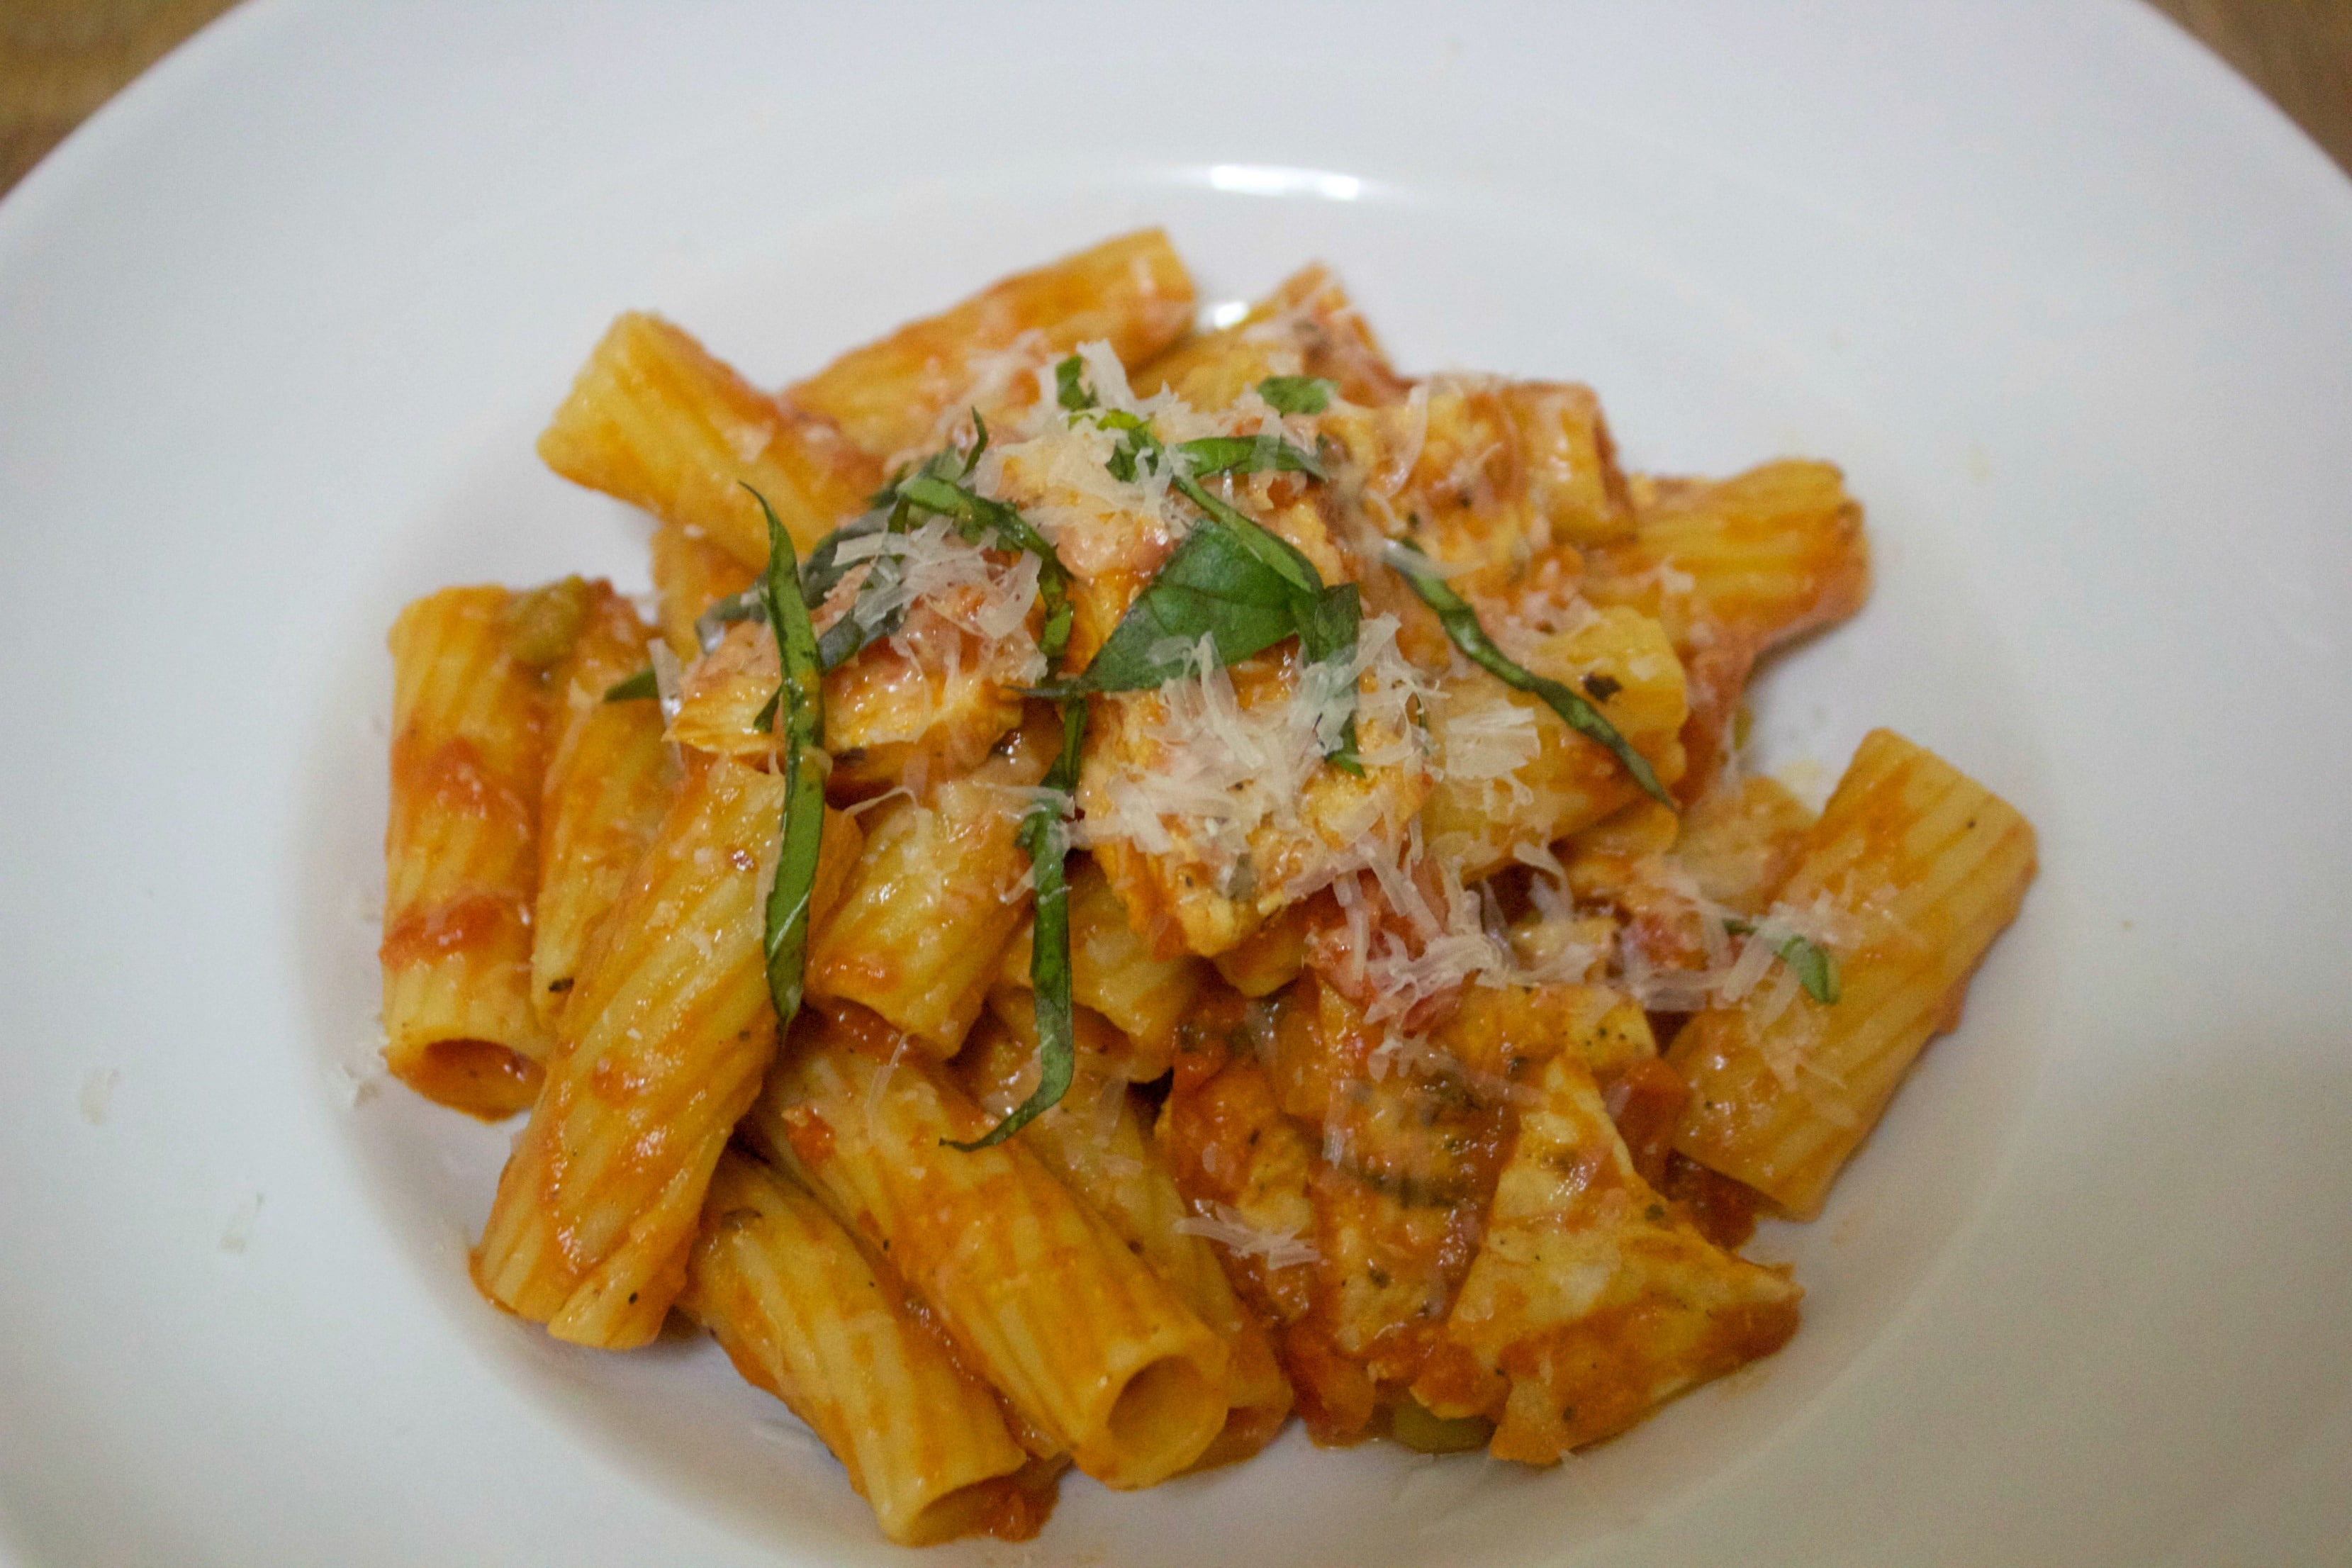 Spicy chicken, rigatoni, parmesan cheese, and fresh basil in a white bowl.